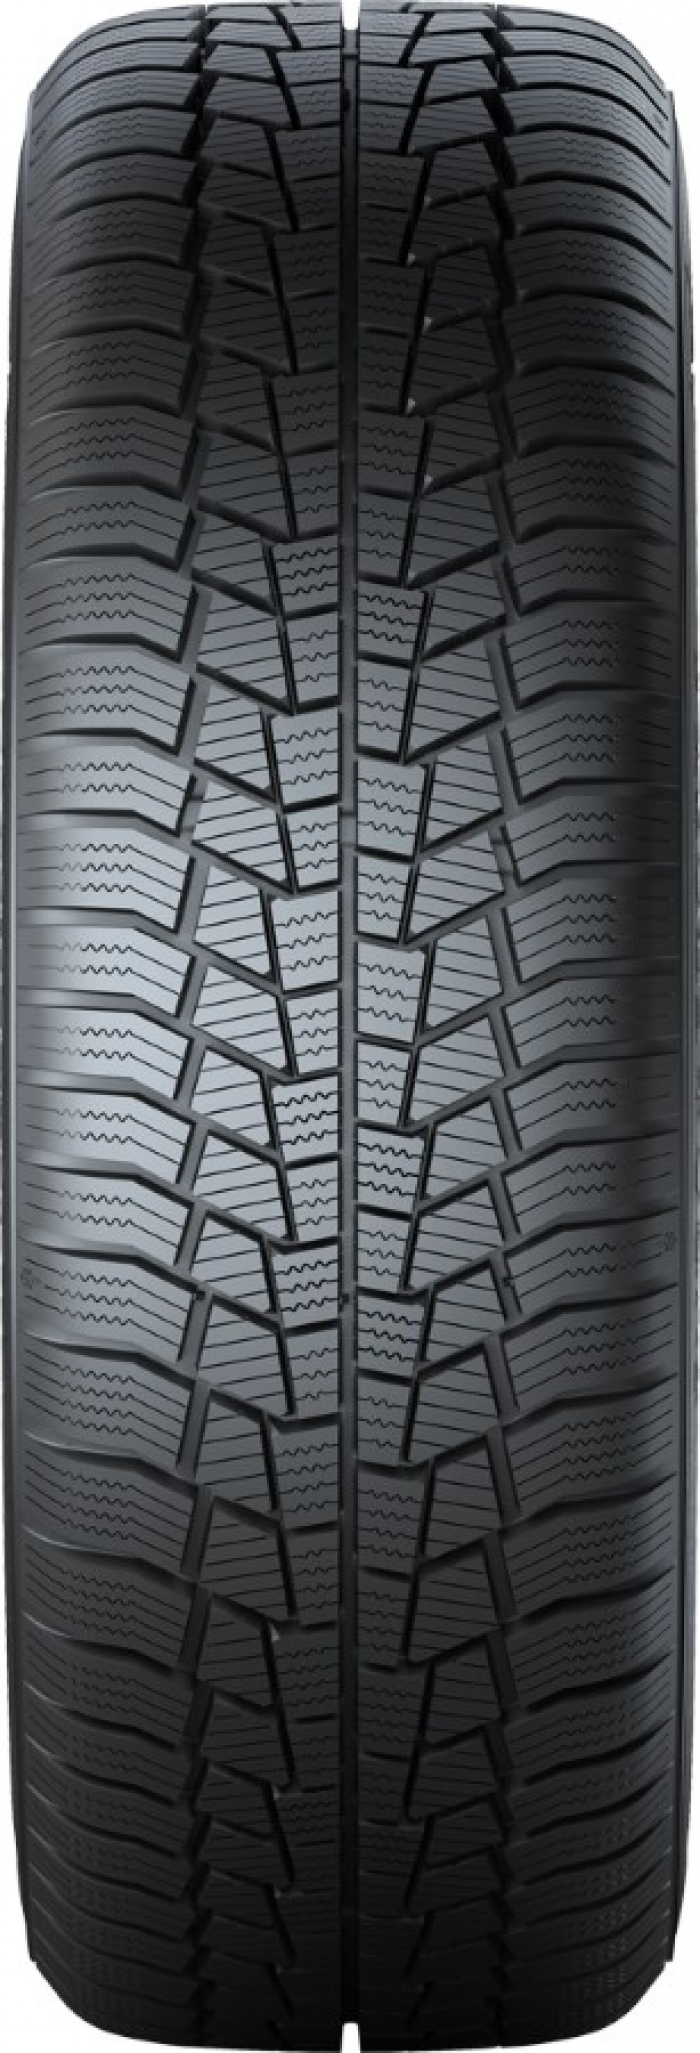 Gislaved Euro Frost 6 195/65 R15 91T  не шип